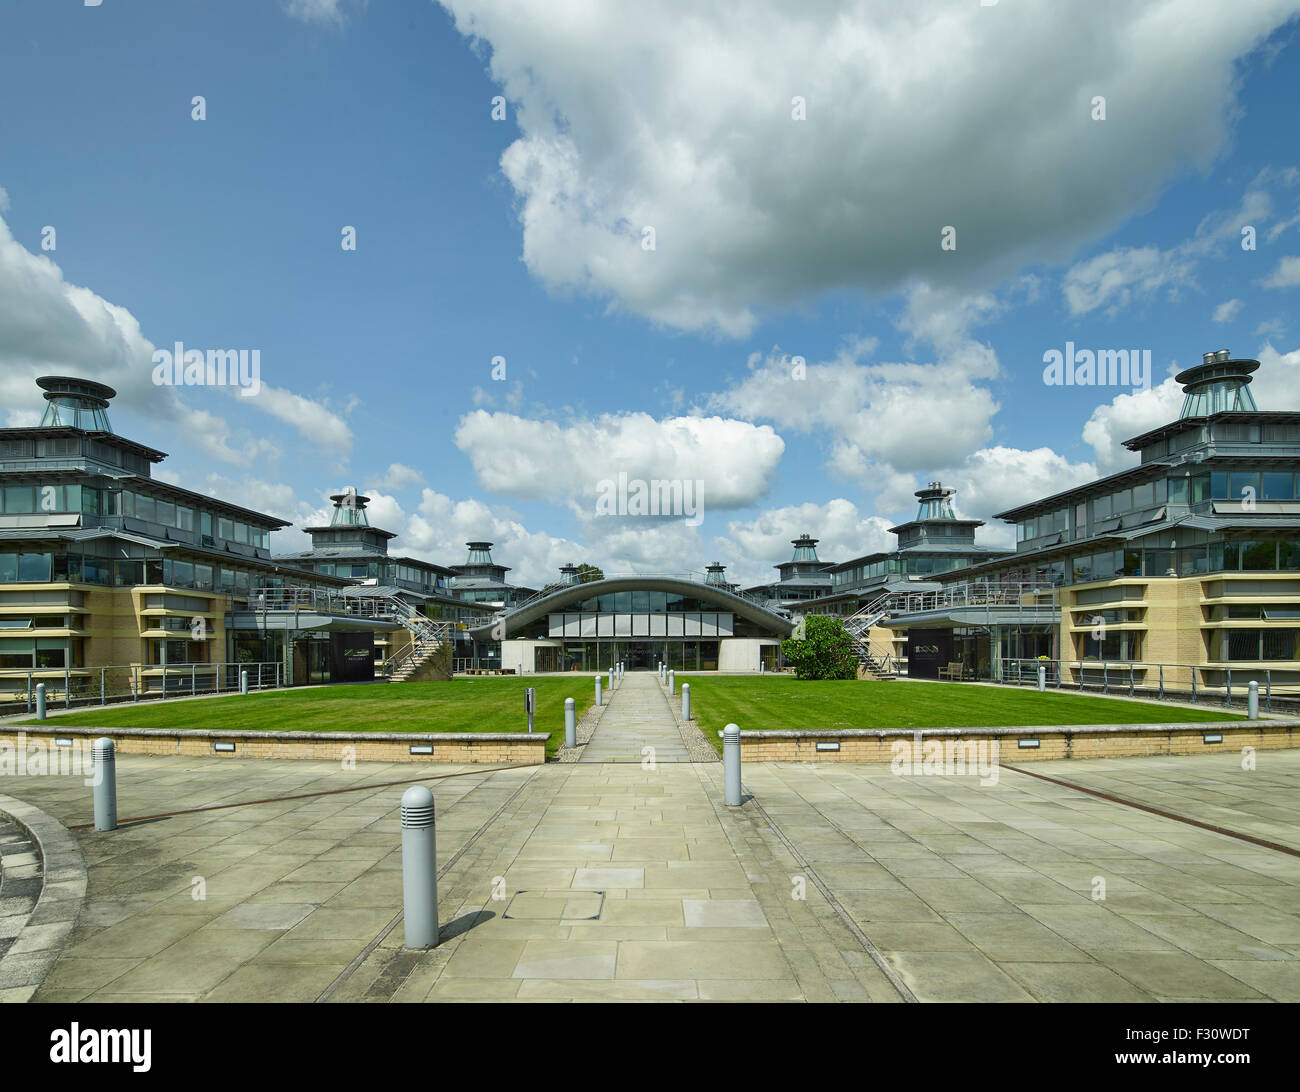 Cambridge University Centre for Mathematical Studies by Edward Cullinan Architects - Stock Image